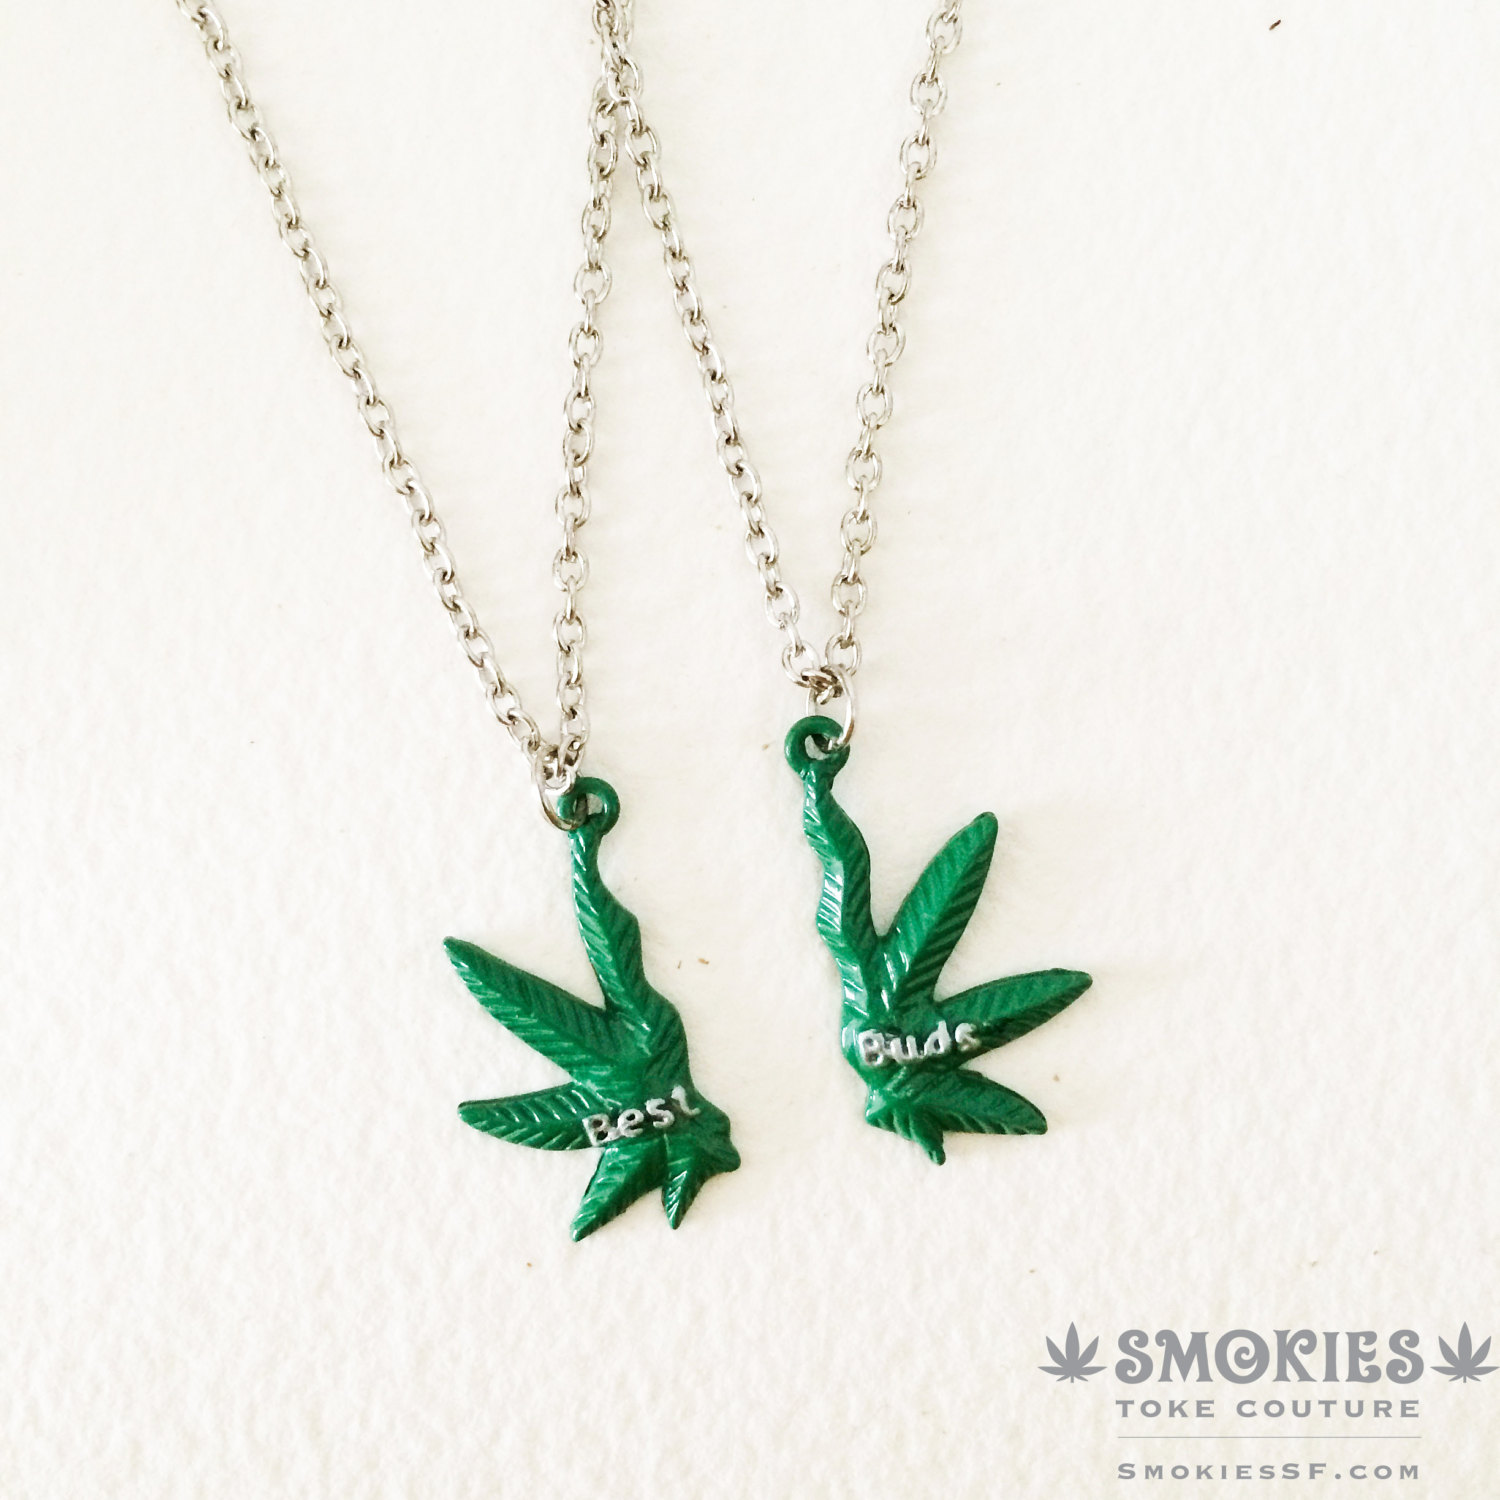 BEST BUDS Marijuana Necklace, marijuana jewelry , best friends, BFF, marijuana gift leaf 420 weed cannabis hemp necklace cannabis